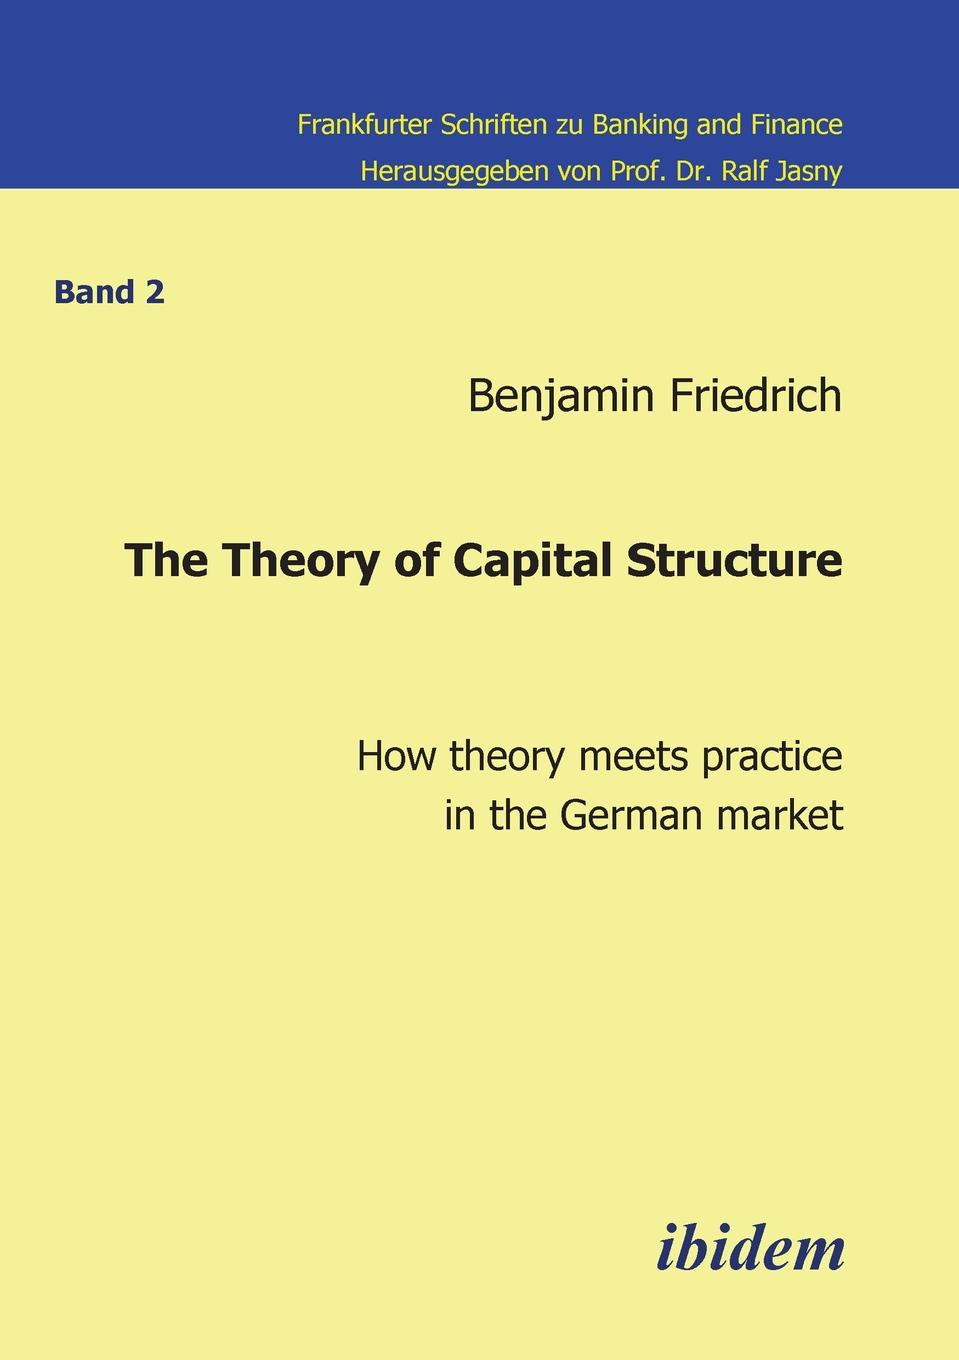 The Theory of Capital Structure - How theory meets practice in the German market. The theory of capital structure is one of the most exciting...